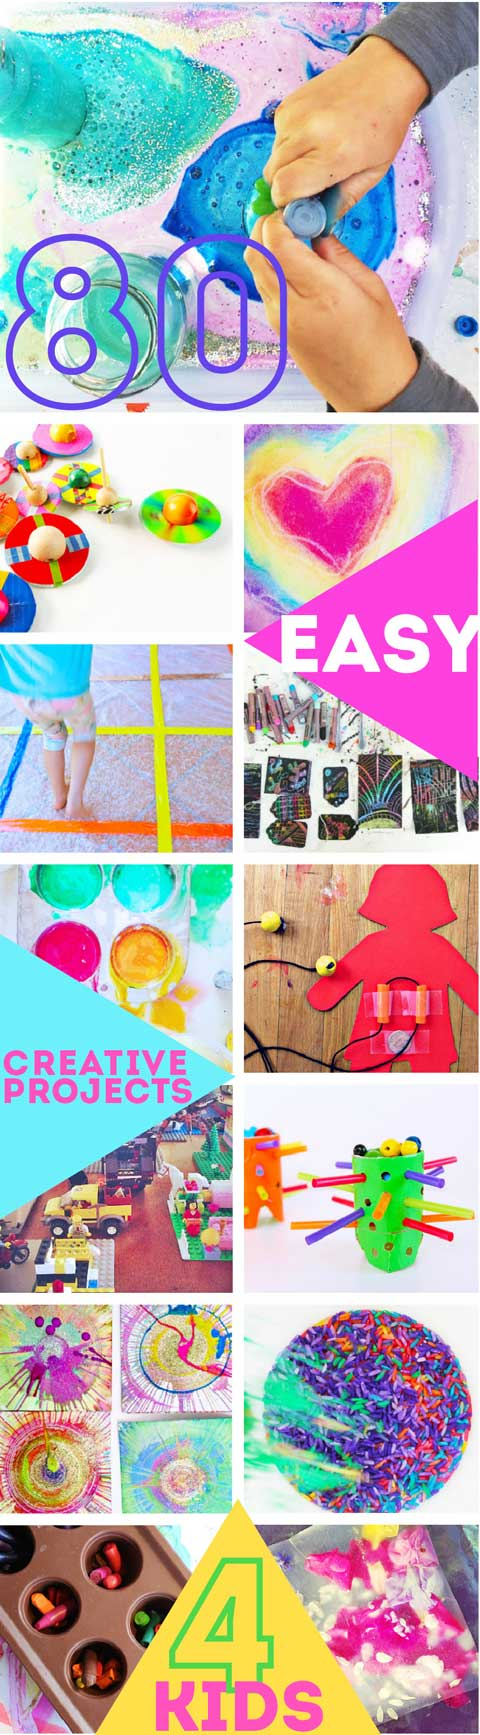 Art clipart art craft.  easy creative projects